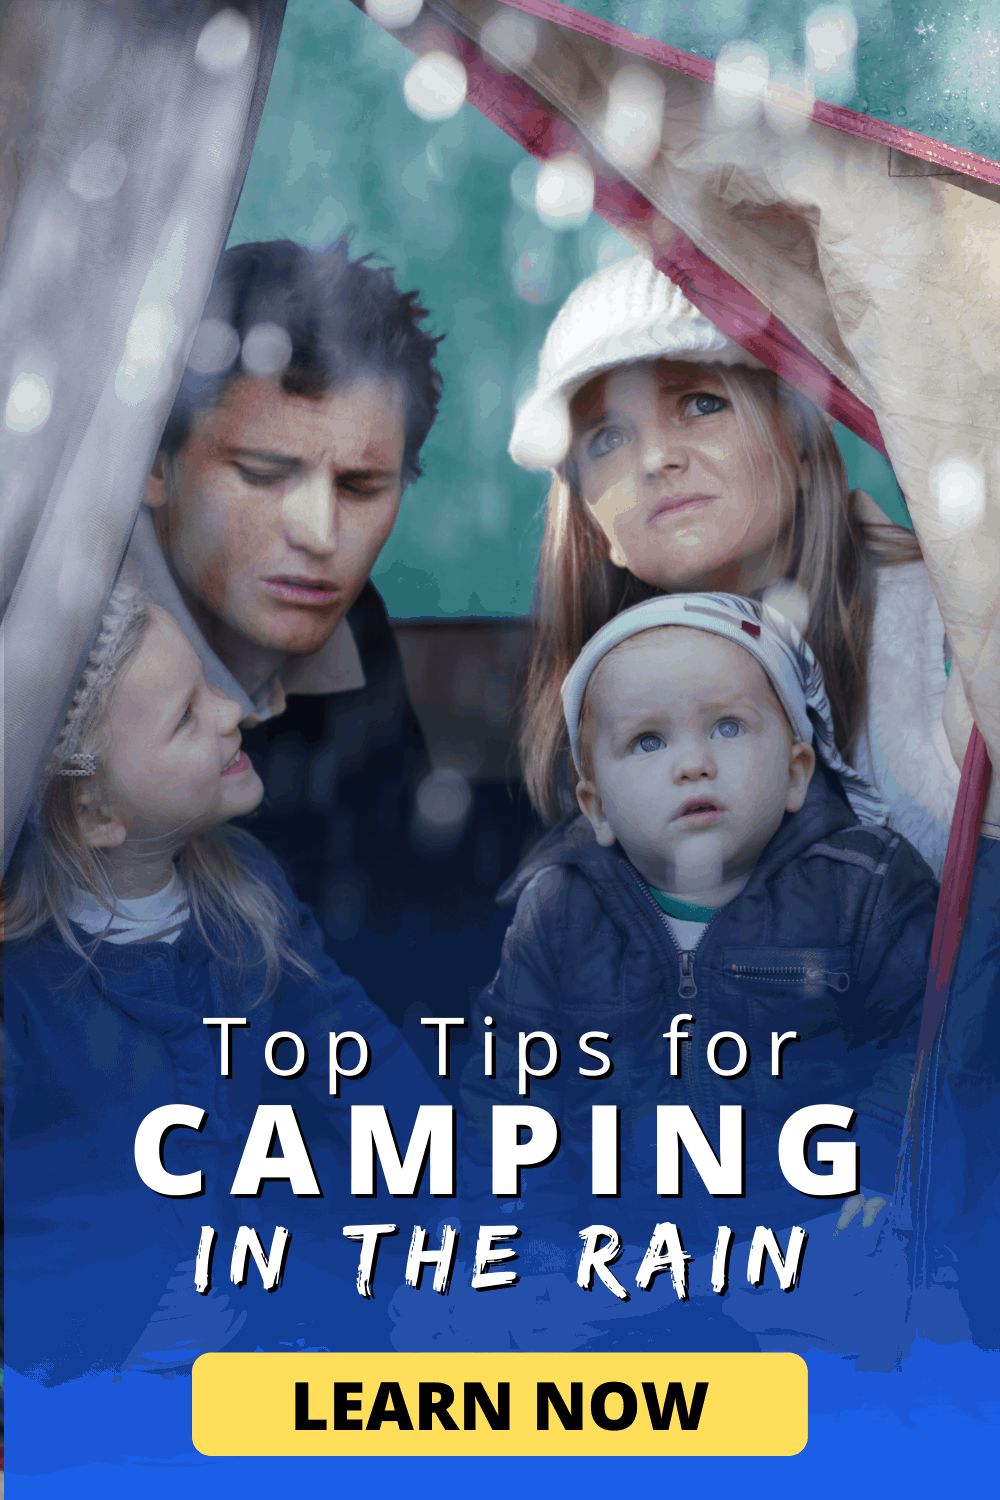 Top Tips for Camping in the Rain | Learn now!